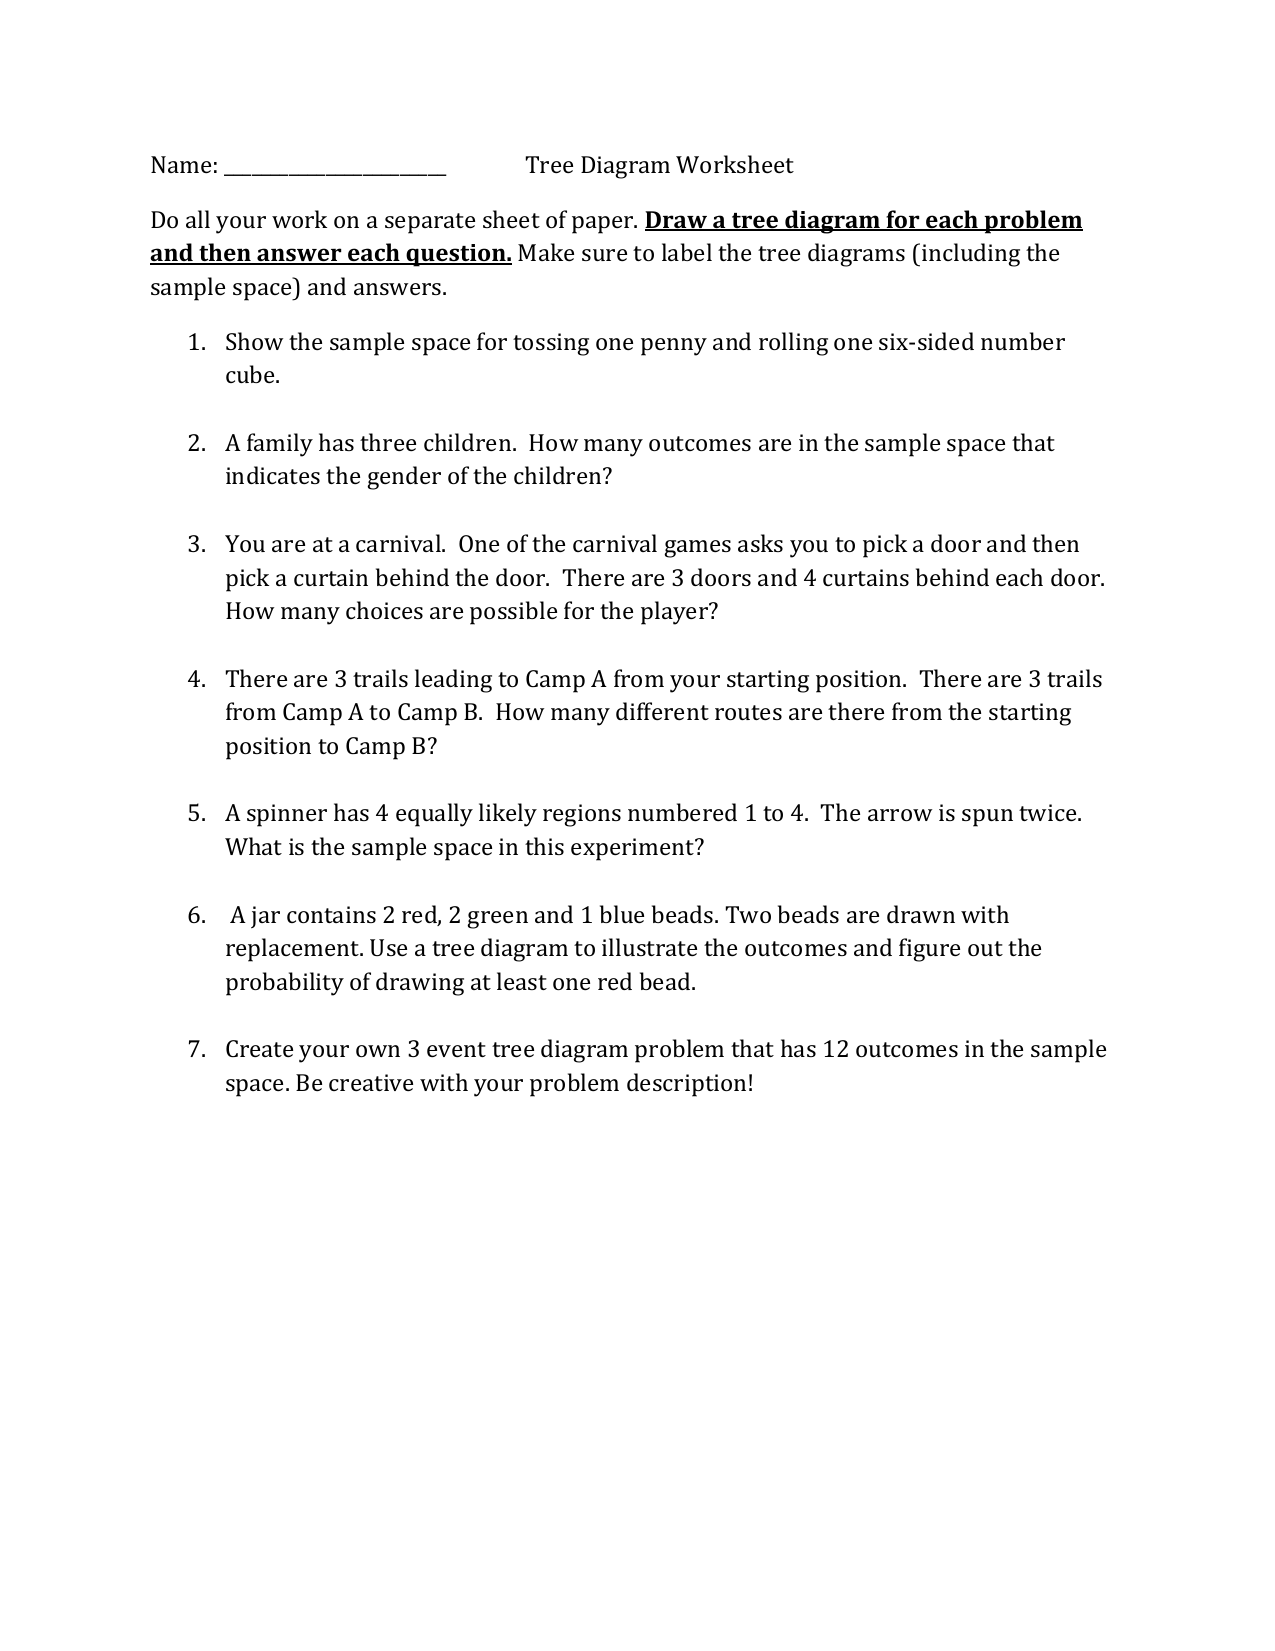 worksheet Tree Diagrams Worksheet name tree diagram worksheet do all your work on a separate